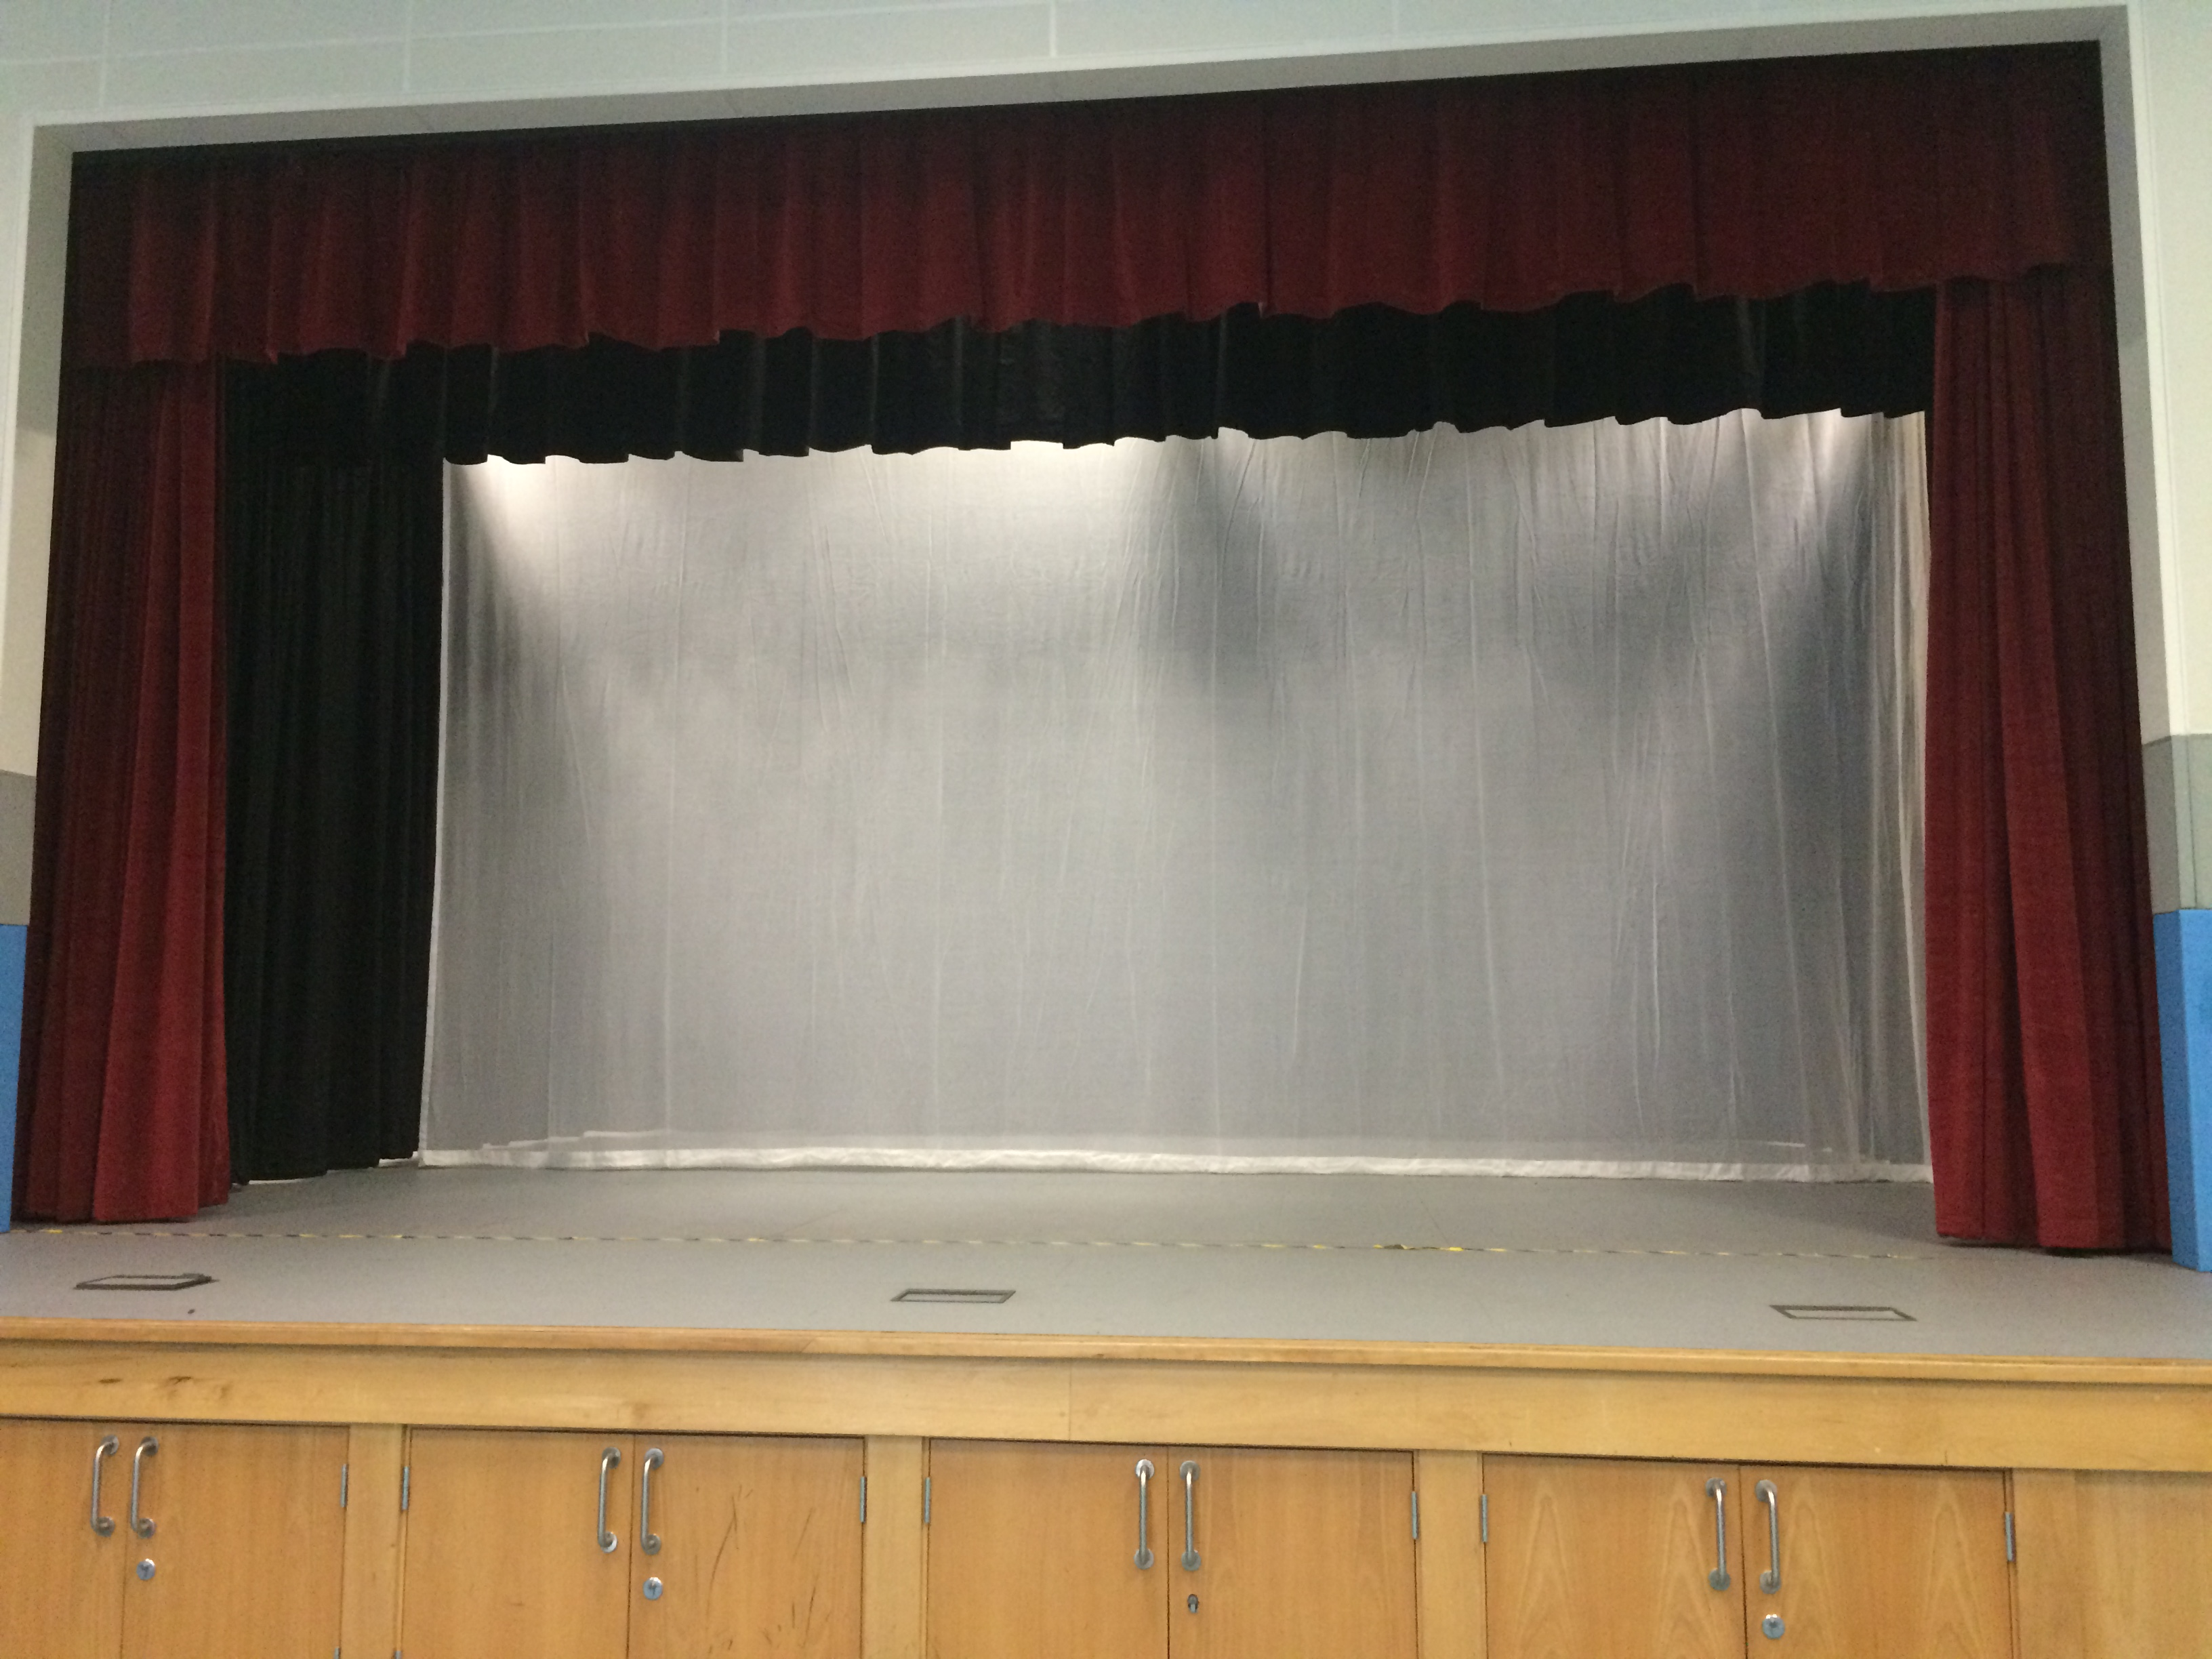 Stage showing use of gauze fabric